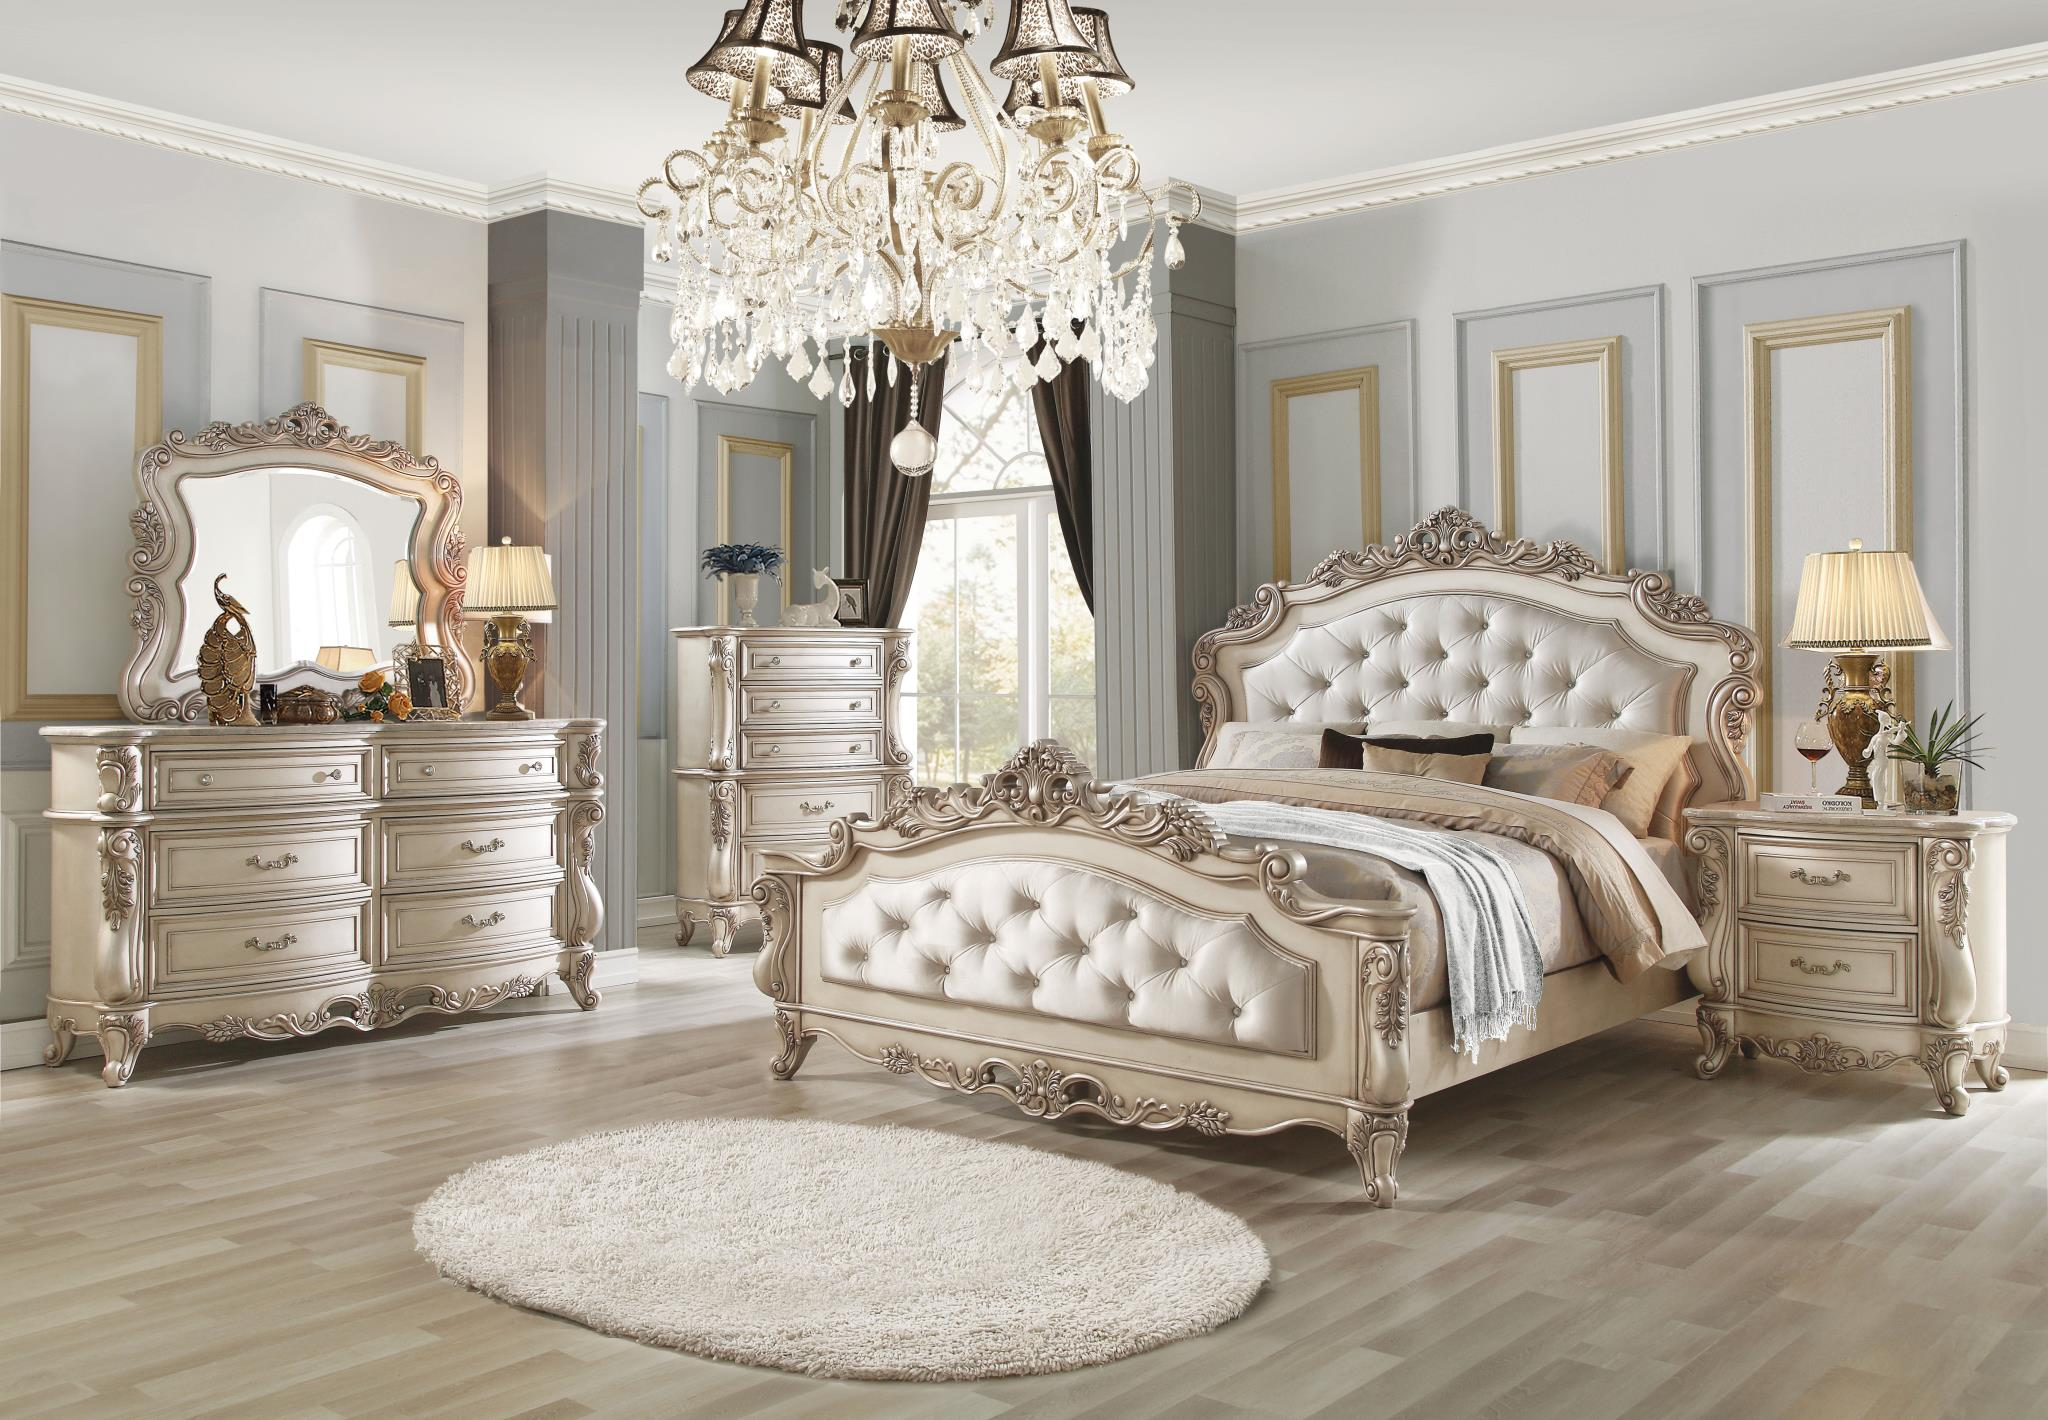 Gorsedd Antique White Bed With Button Tufted Headboard